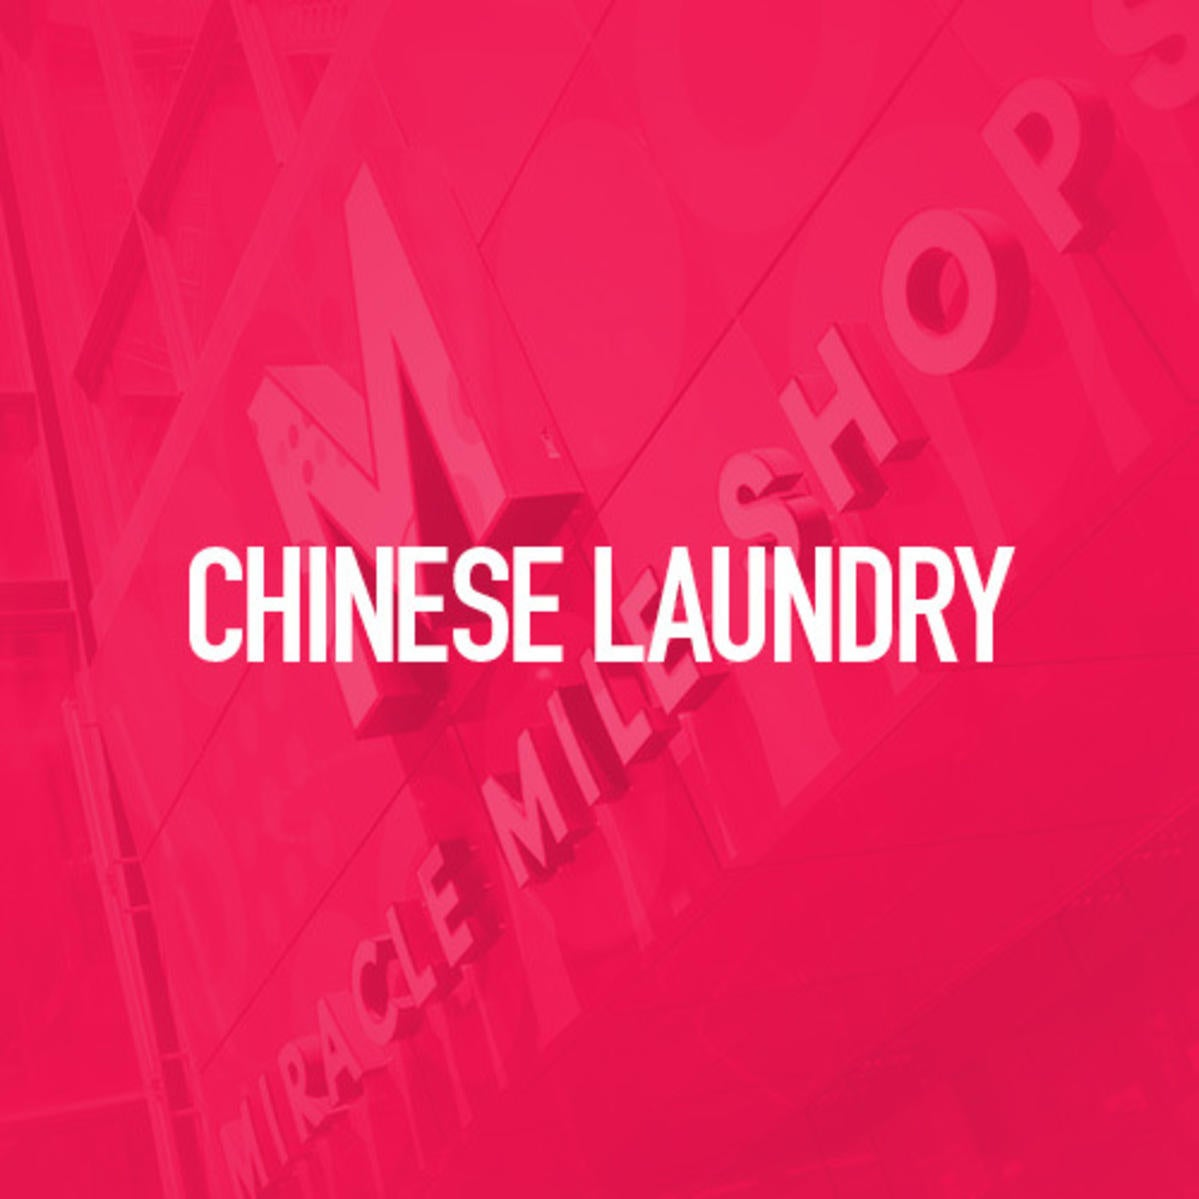 Chinese Laundry Miracle Mile Shops Las Vegas